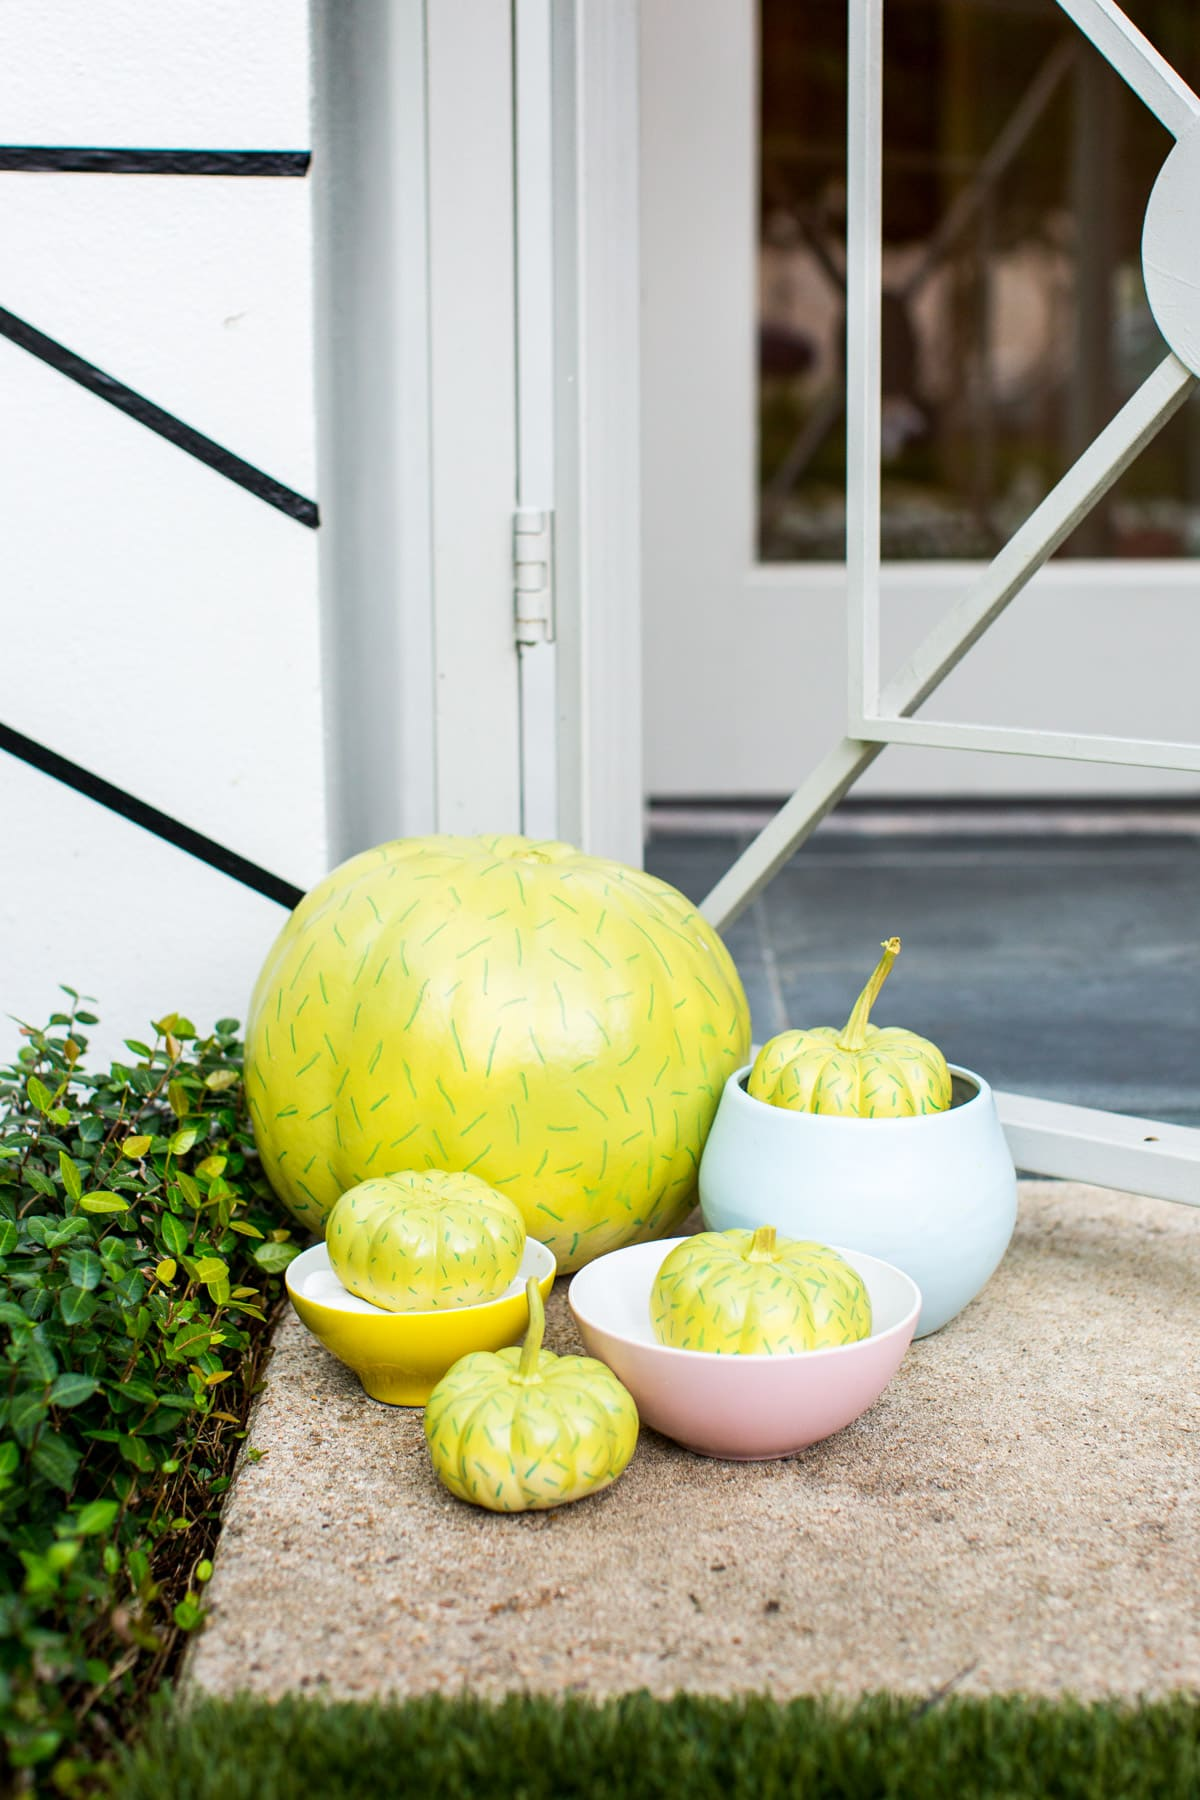 cacti and succulent pumpkin decoration idea - Palm Springs Inspired Halloween Entryway Decor & Product Round Up by top Houston lifestyle blogger Ashley Rose - #halloweendecor #halloween #decor #home #holidays #curbappeal #palmsprings #midcentury